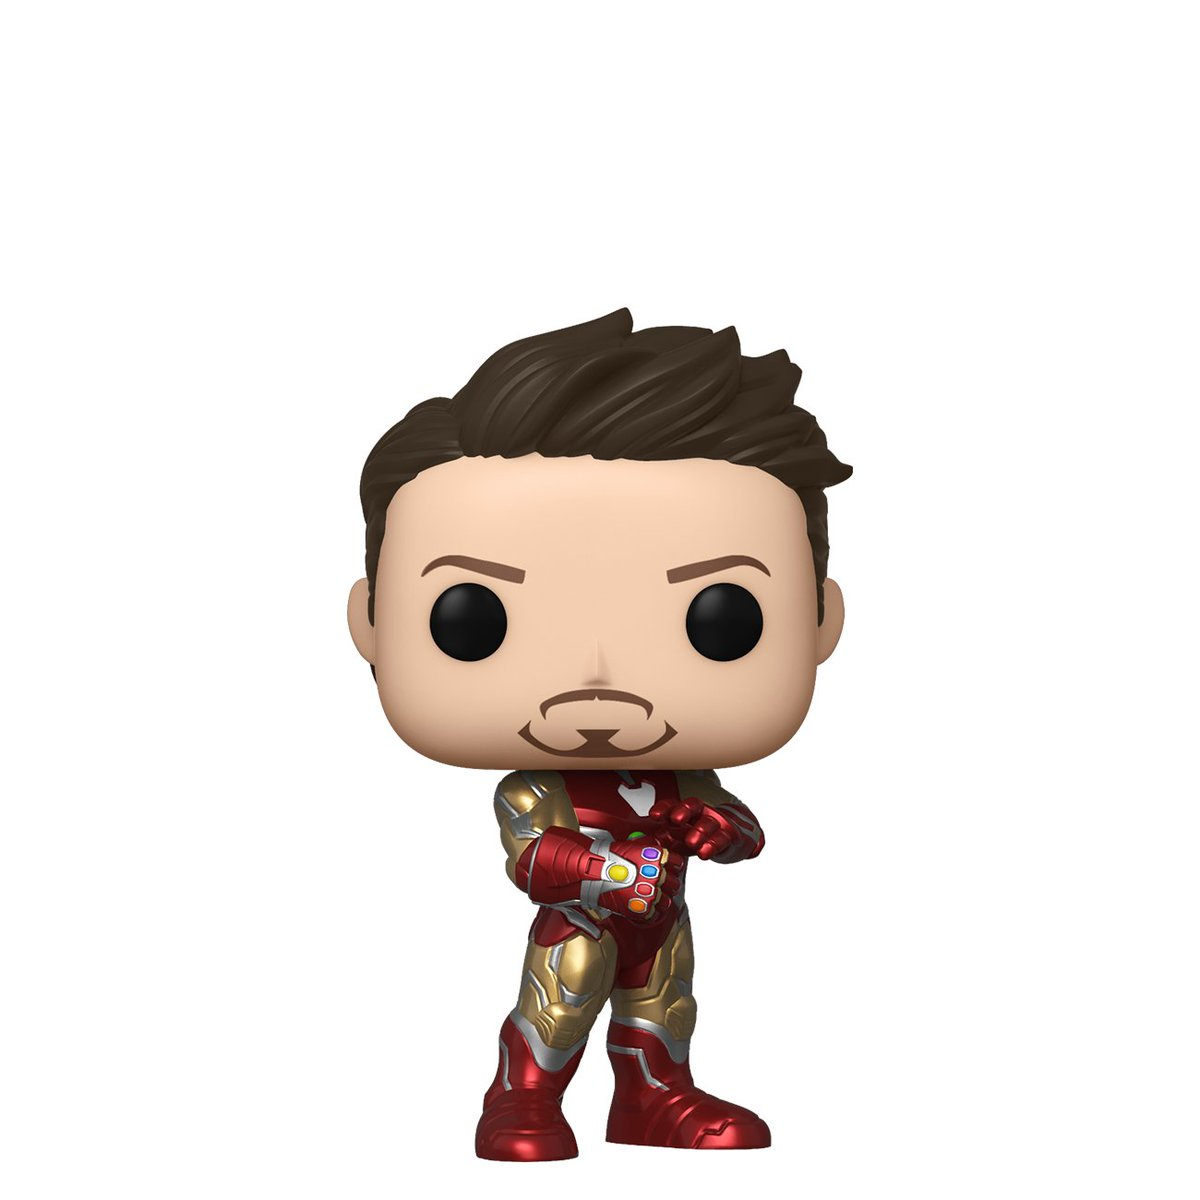 test Twitter Media - RT & follow @OriginalFunko for a chance to WIN a 2019 #NYCC exclusive Iron Man Pop! #Funko #Exclusive #Giveaway #FunkoNYCC #NYCC #Marvel https://t.co/spqy7gfZgw